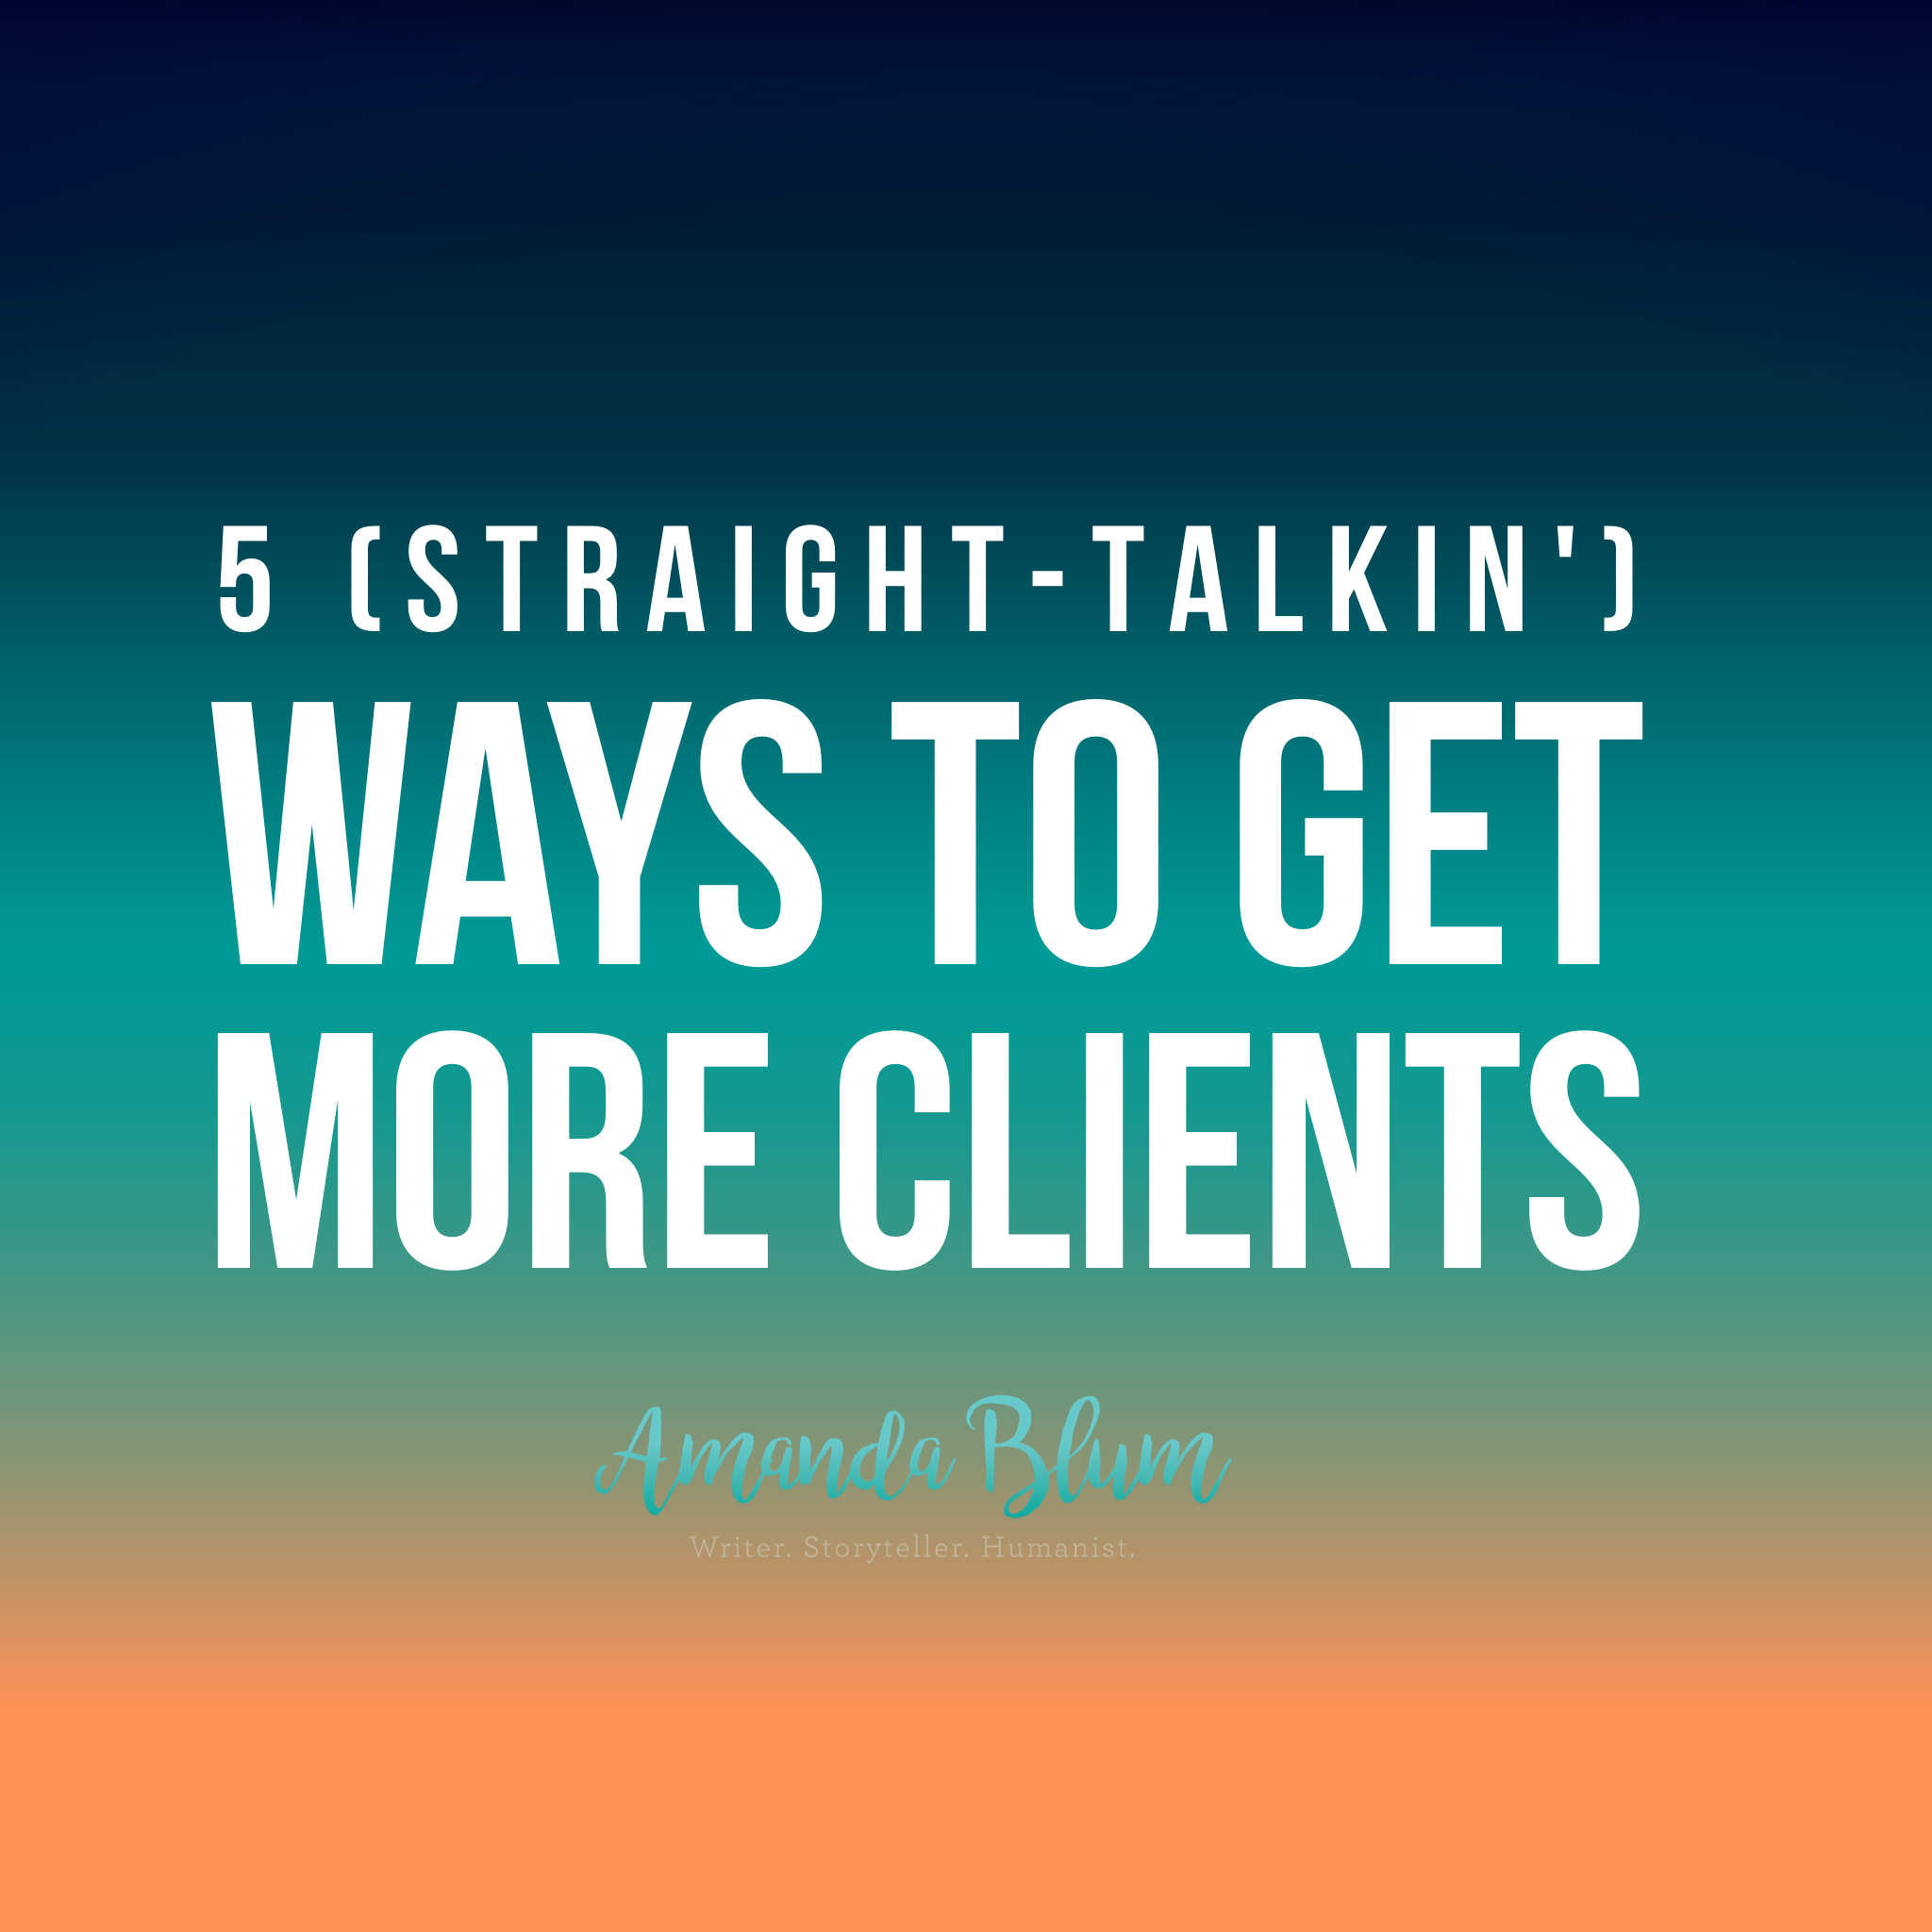 5 ways to get more clients